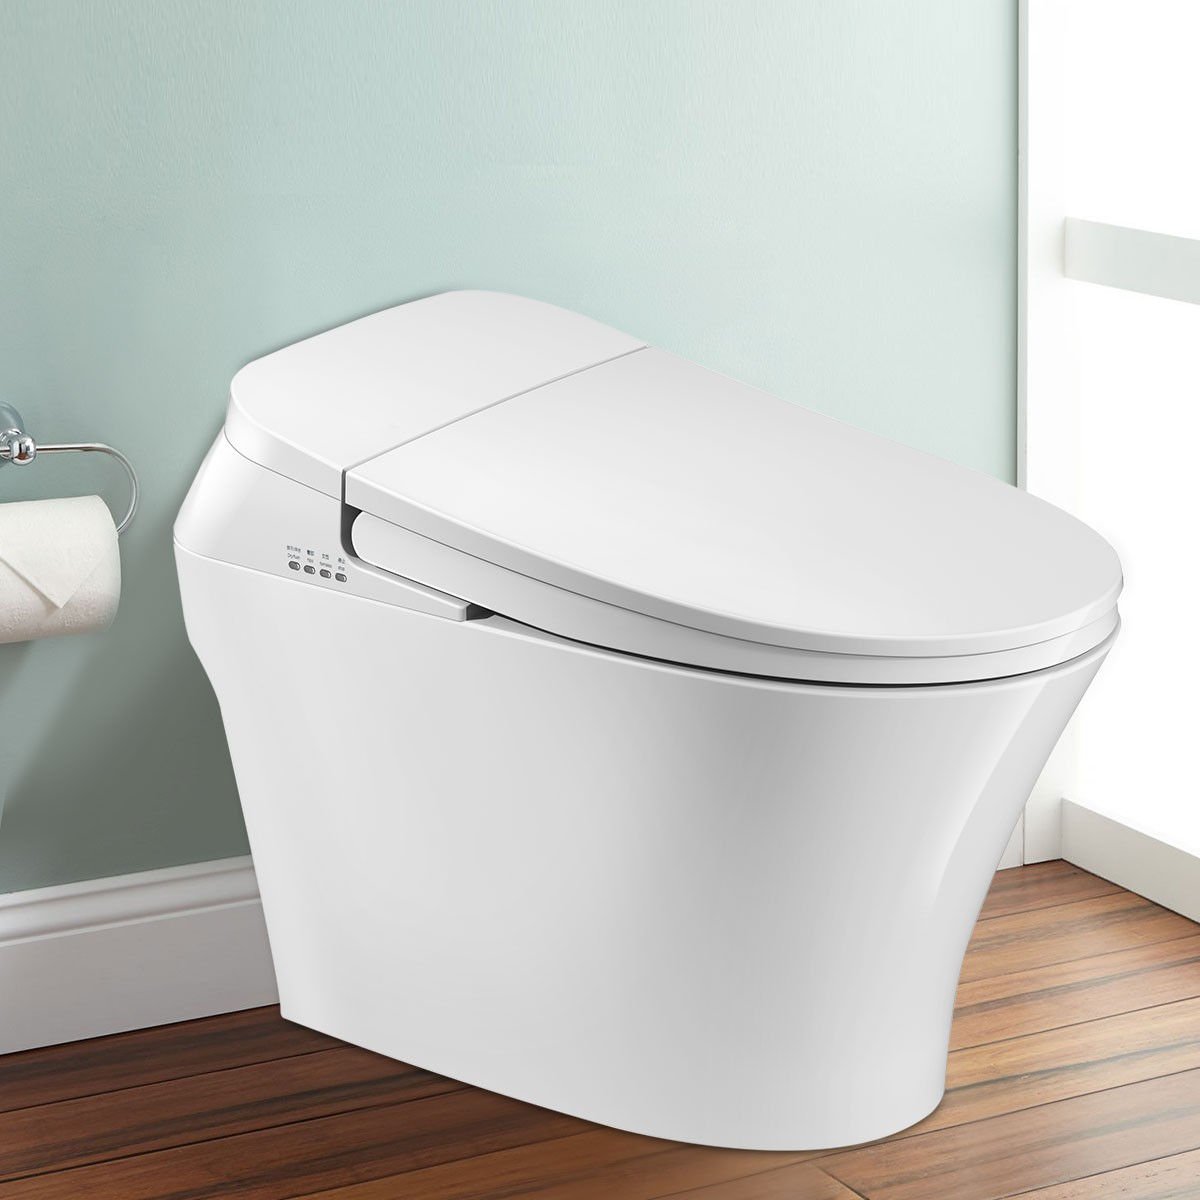 White Elongated One-piece Smart Toilet with Bidet Seat (DK-QY-001A)